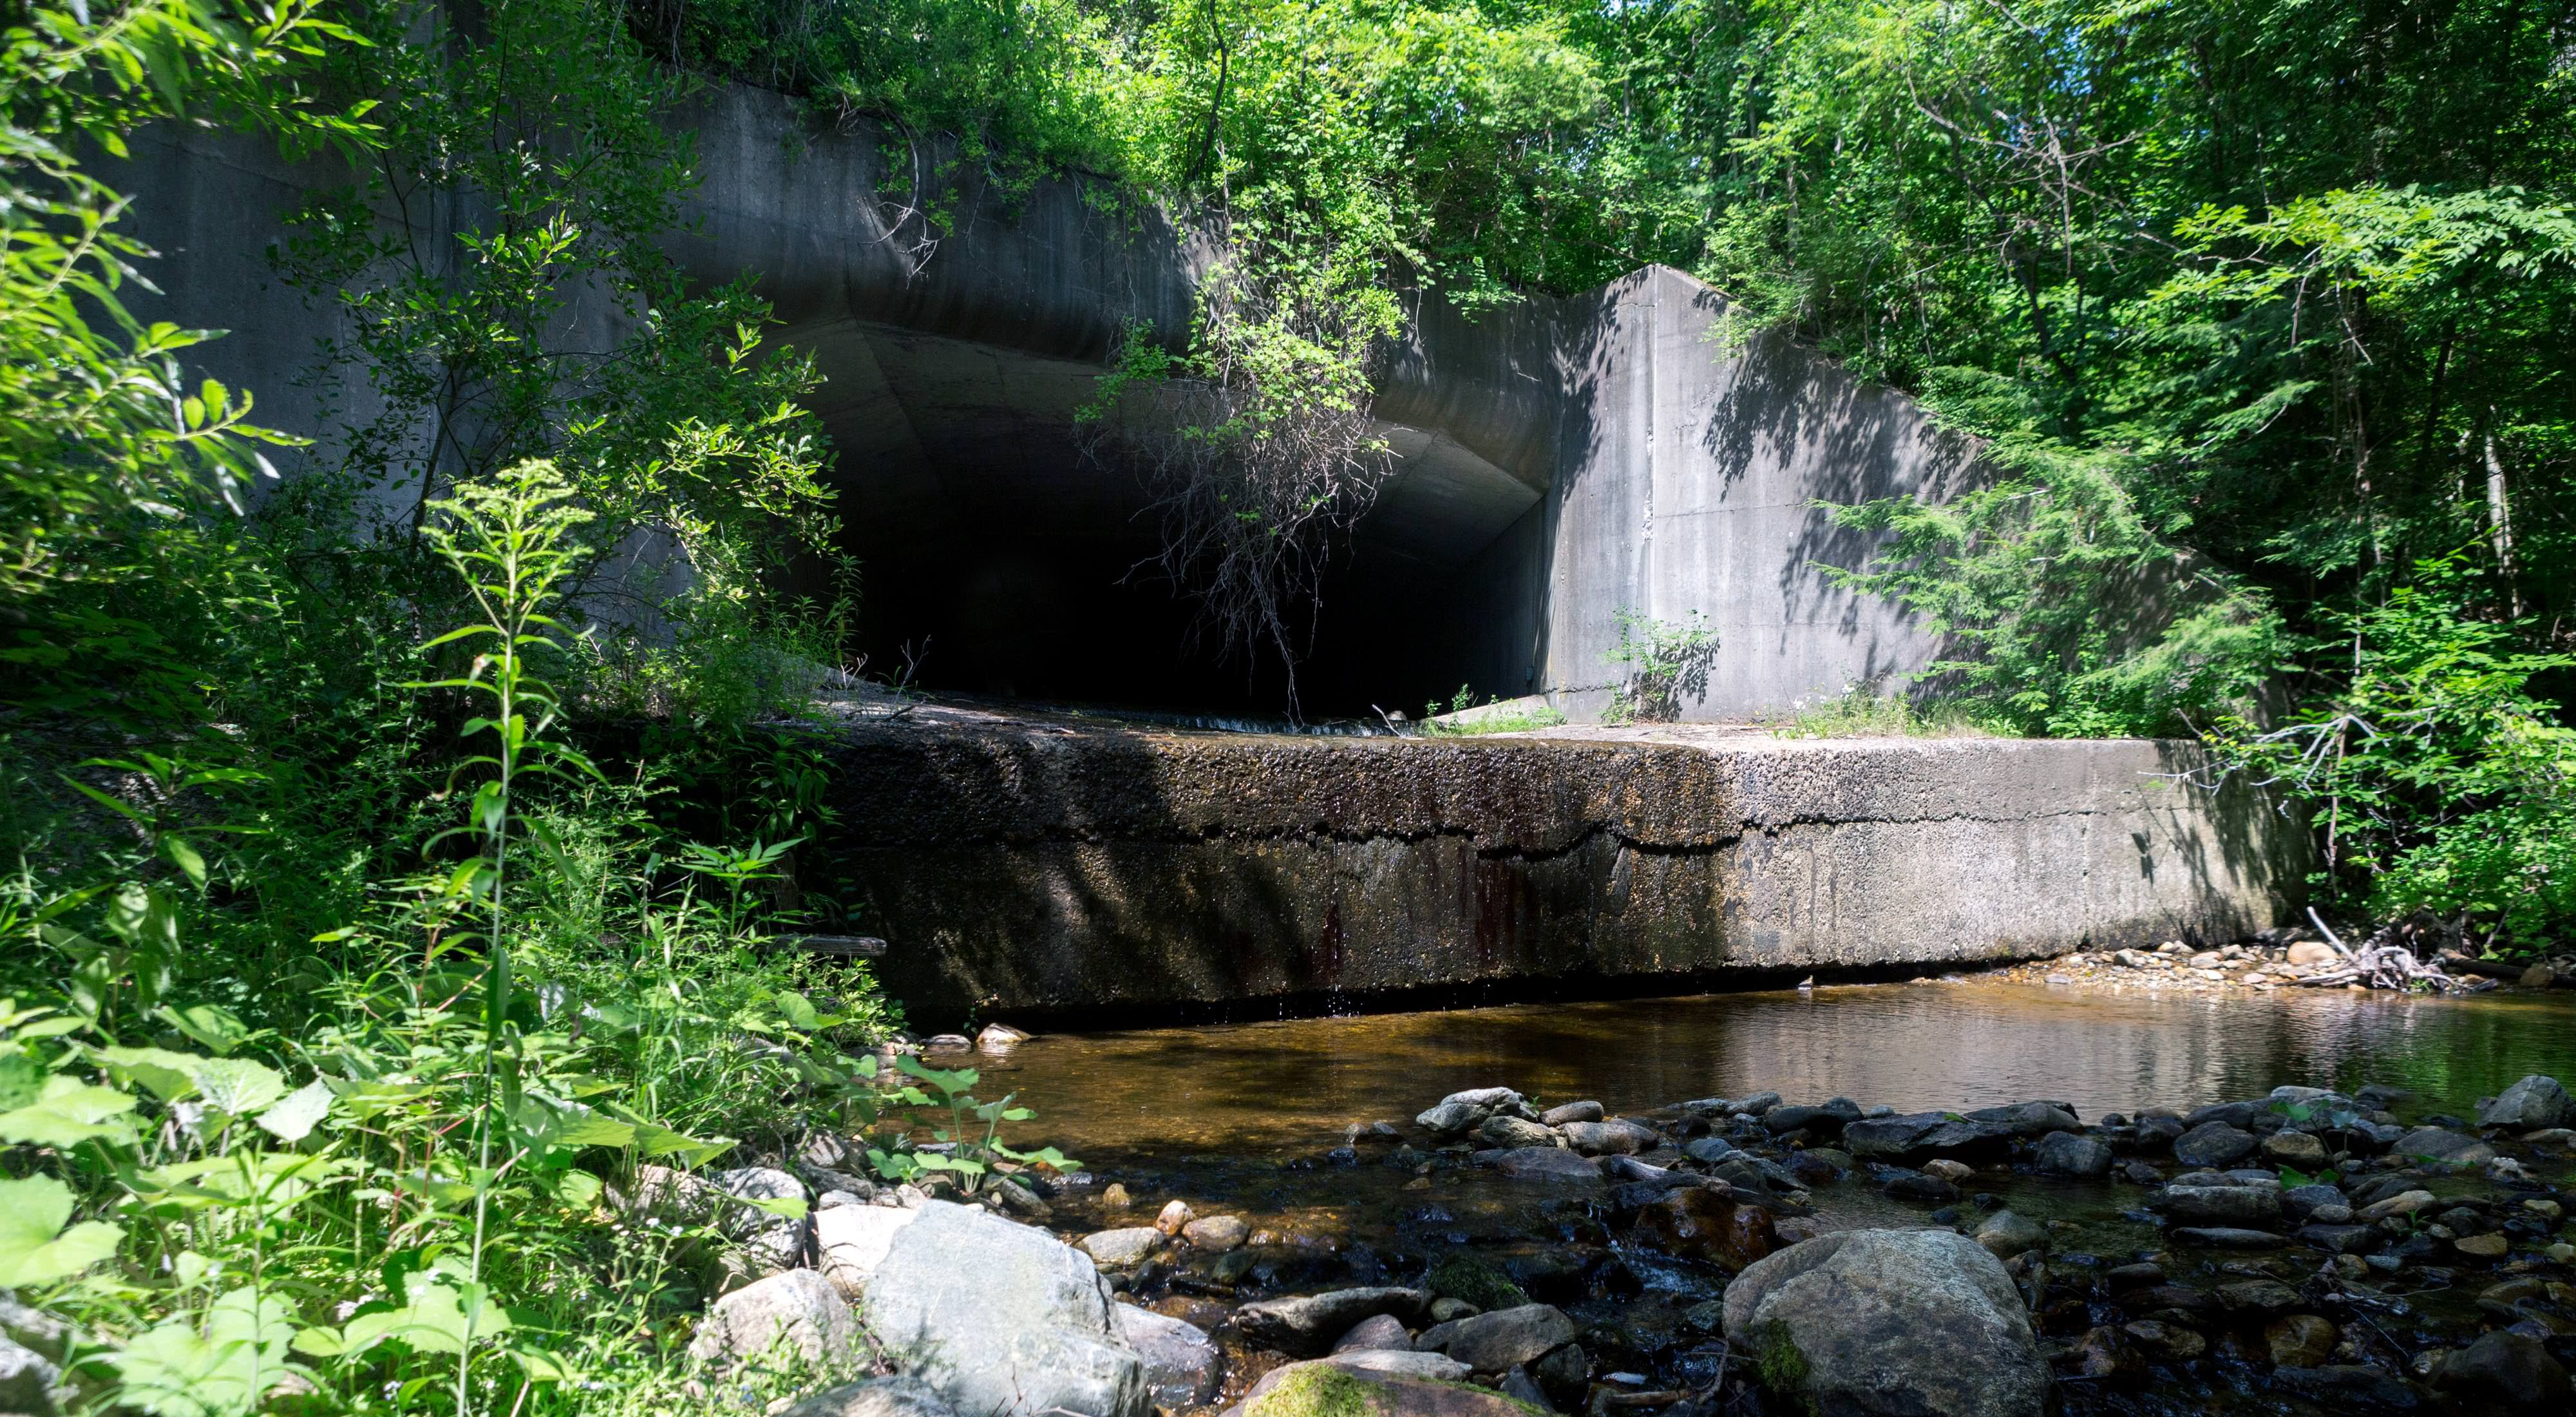 Culverts come in many shapes and forms, including large cement tunnels like this one that passes underneath the Massachusetts Turnpike in Lee, MA.